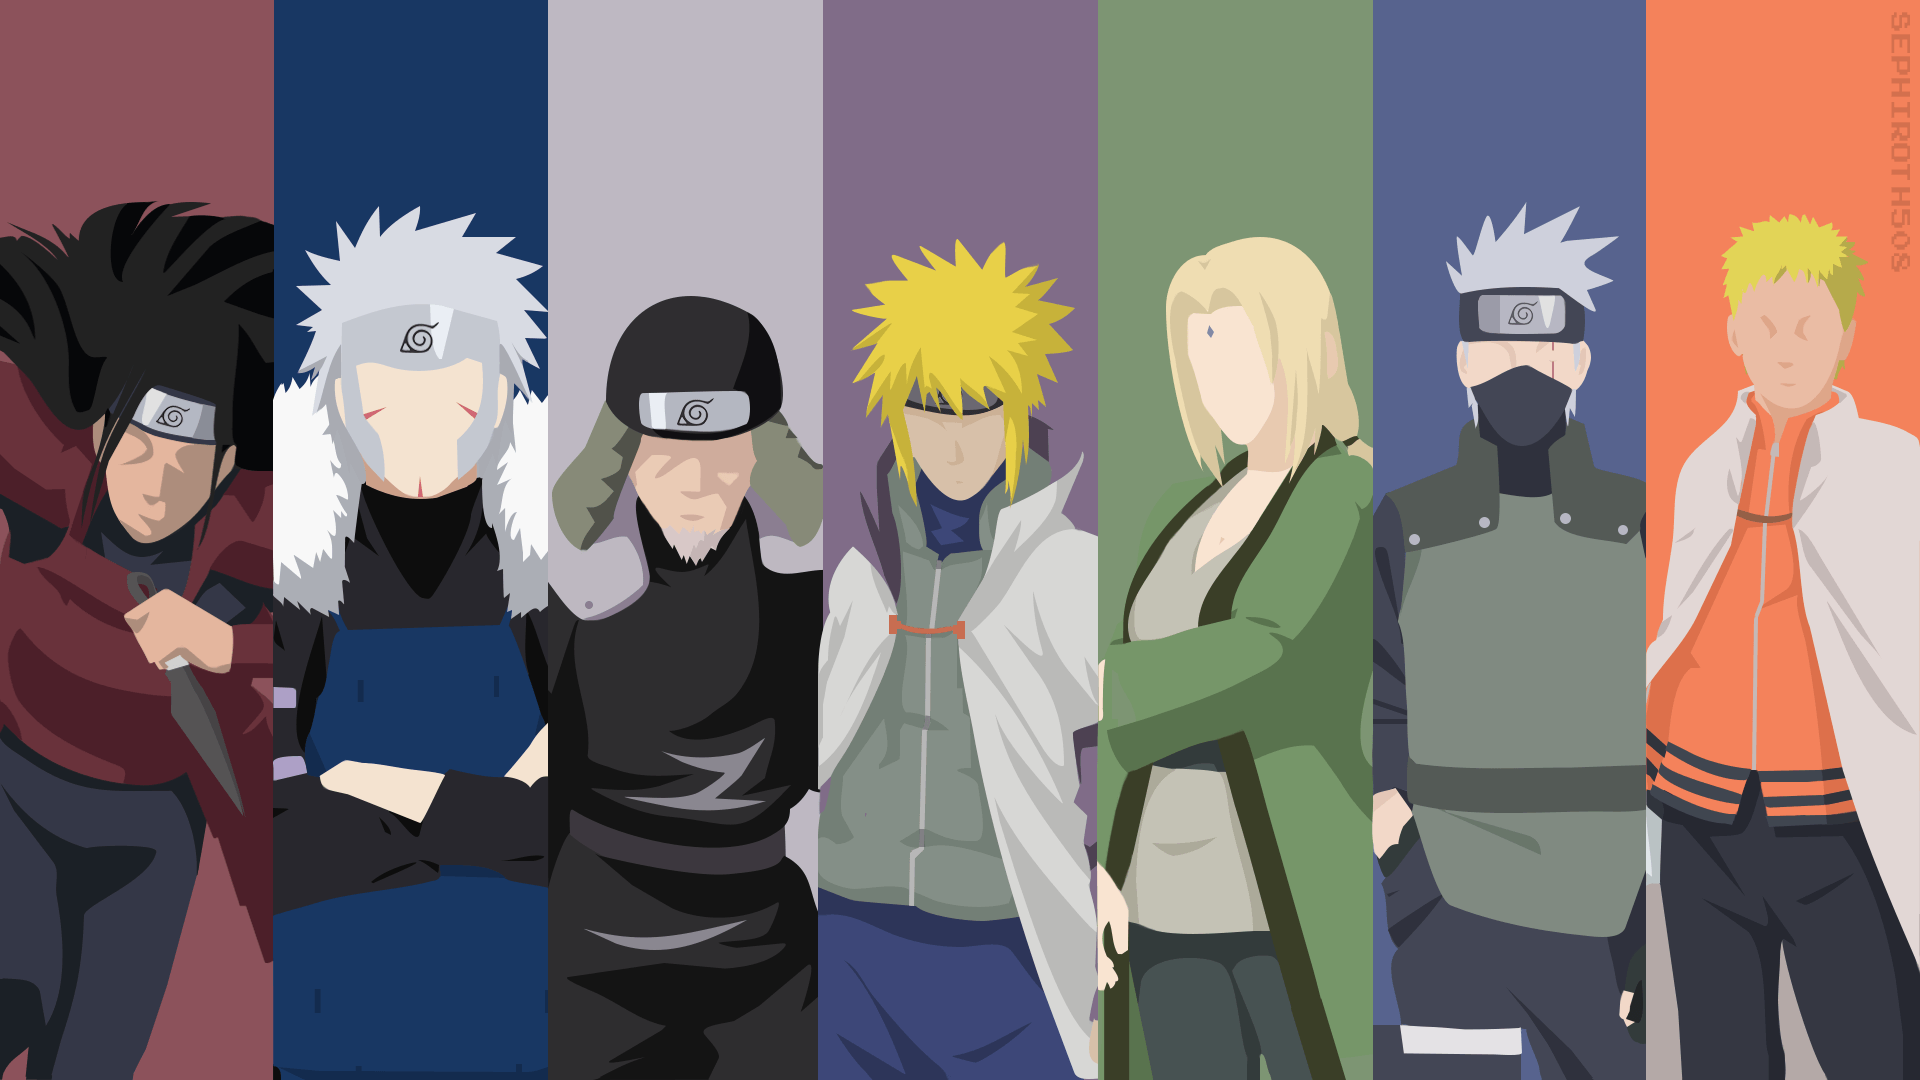 Naruto Hokage Wallpapers - Top Free Naruto Hokage ...